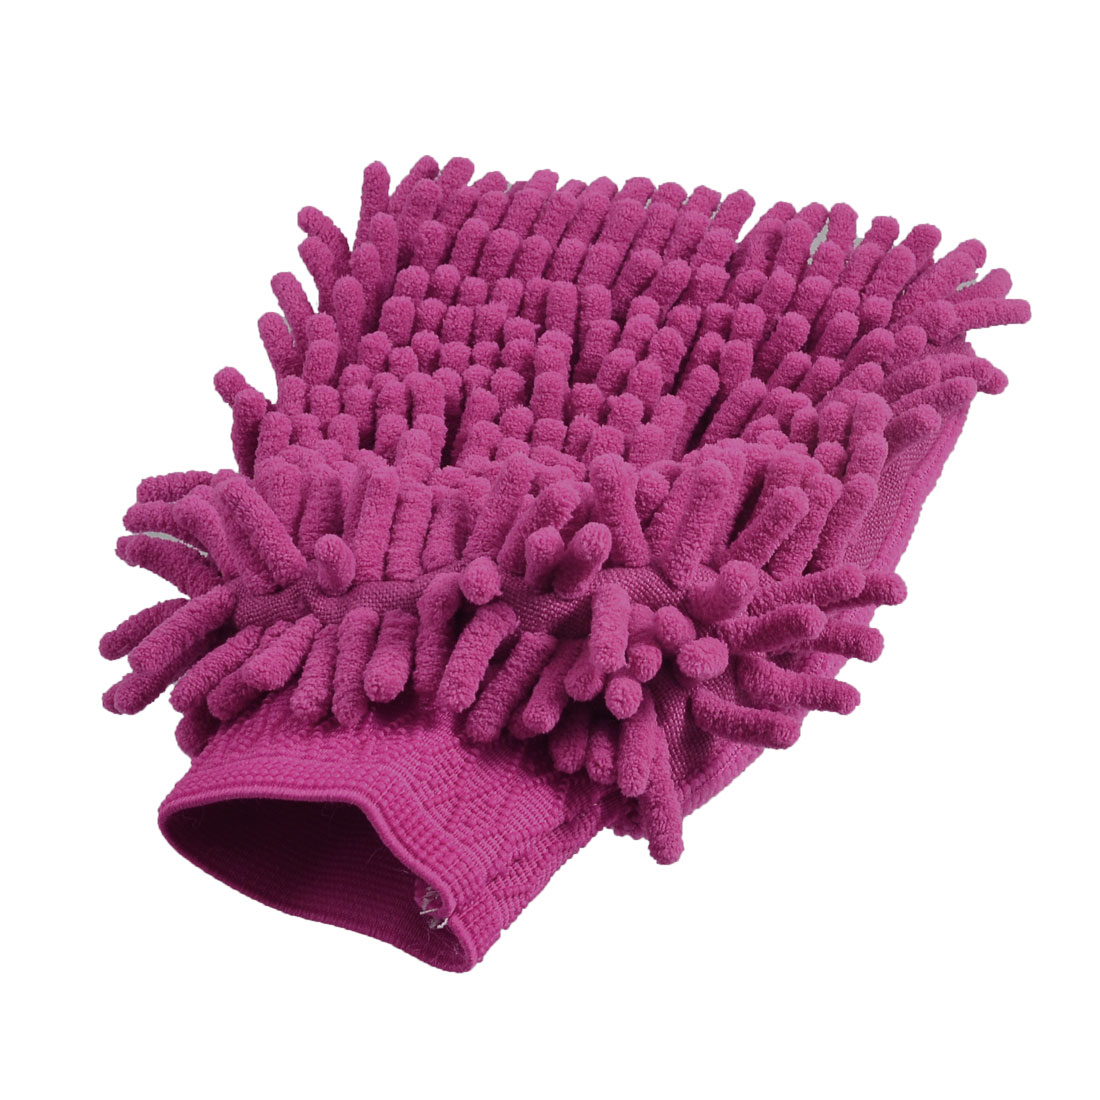 Car 23cm x 15cm Fuchsia Single Side Microfiber Chenille Wash Mitt Glove